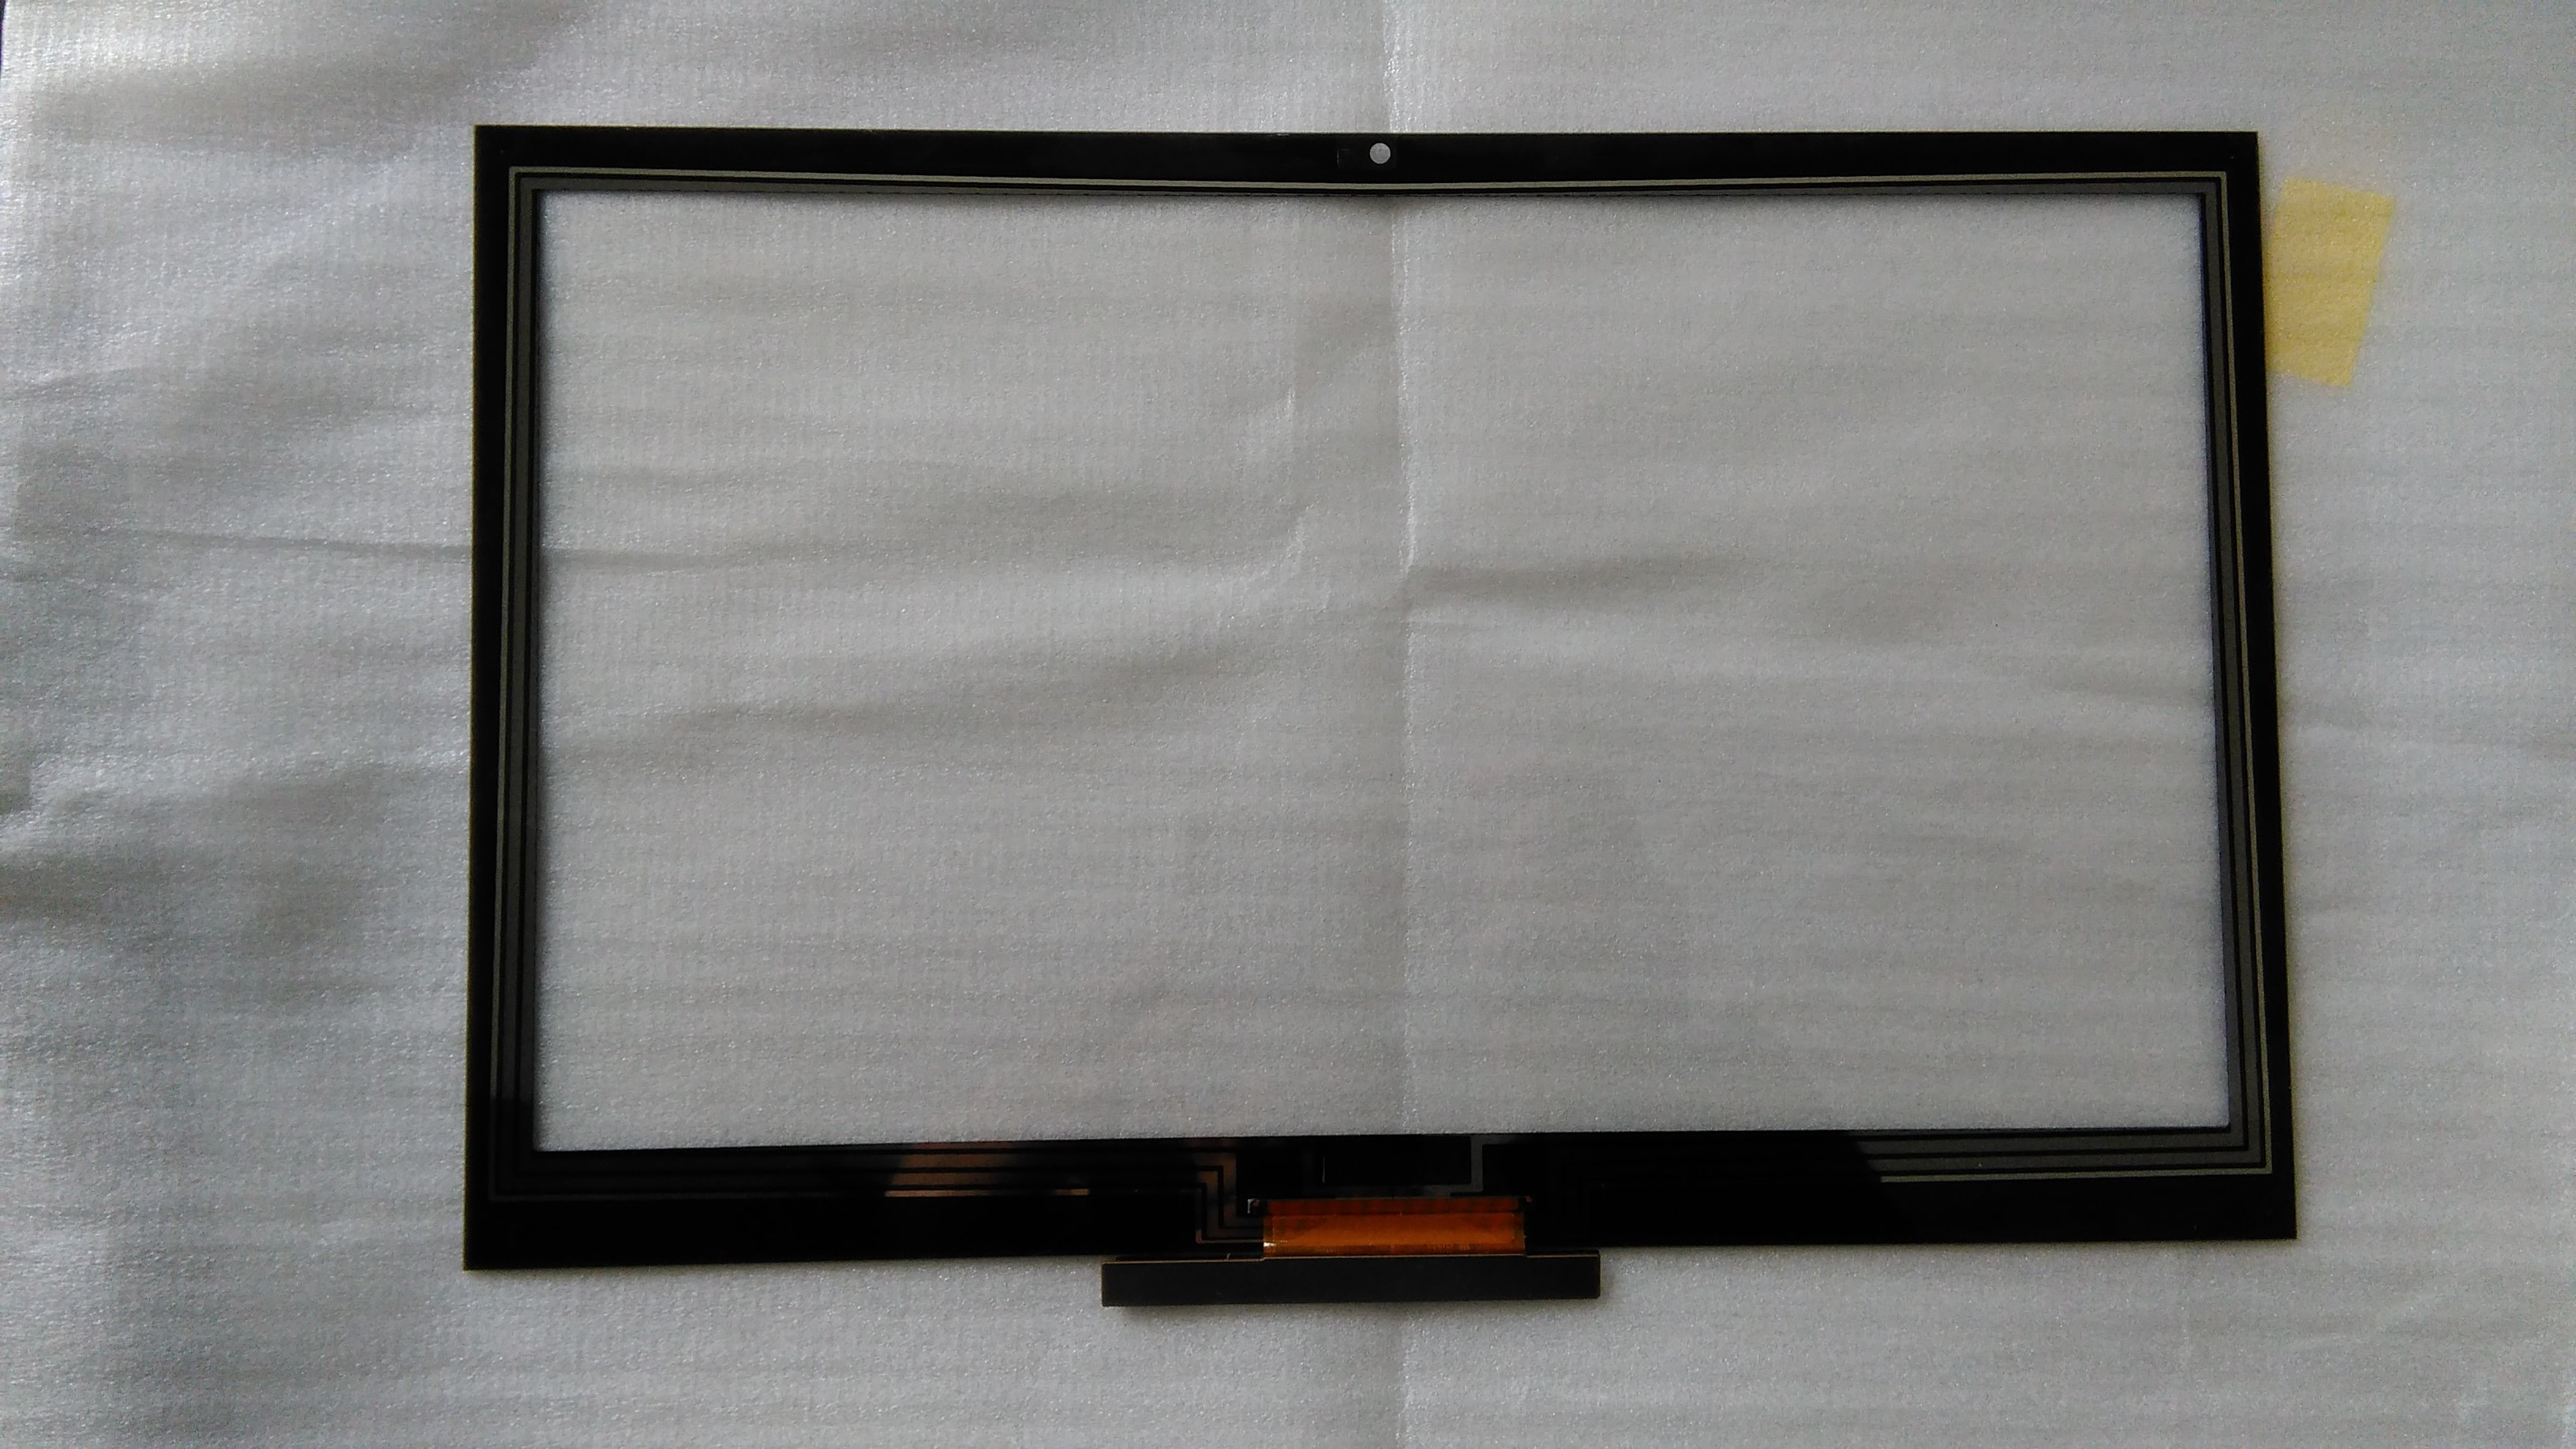 Laptop LCD Display Screen For SONY SVP13 SVP132 Touch Module Cover Assembly Black  digitizer glass WX13F009G101 1920*1080 free dhl brand new black lcd display touch screen digitizer assembly for sony xperia z1s l39t c6916